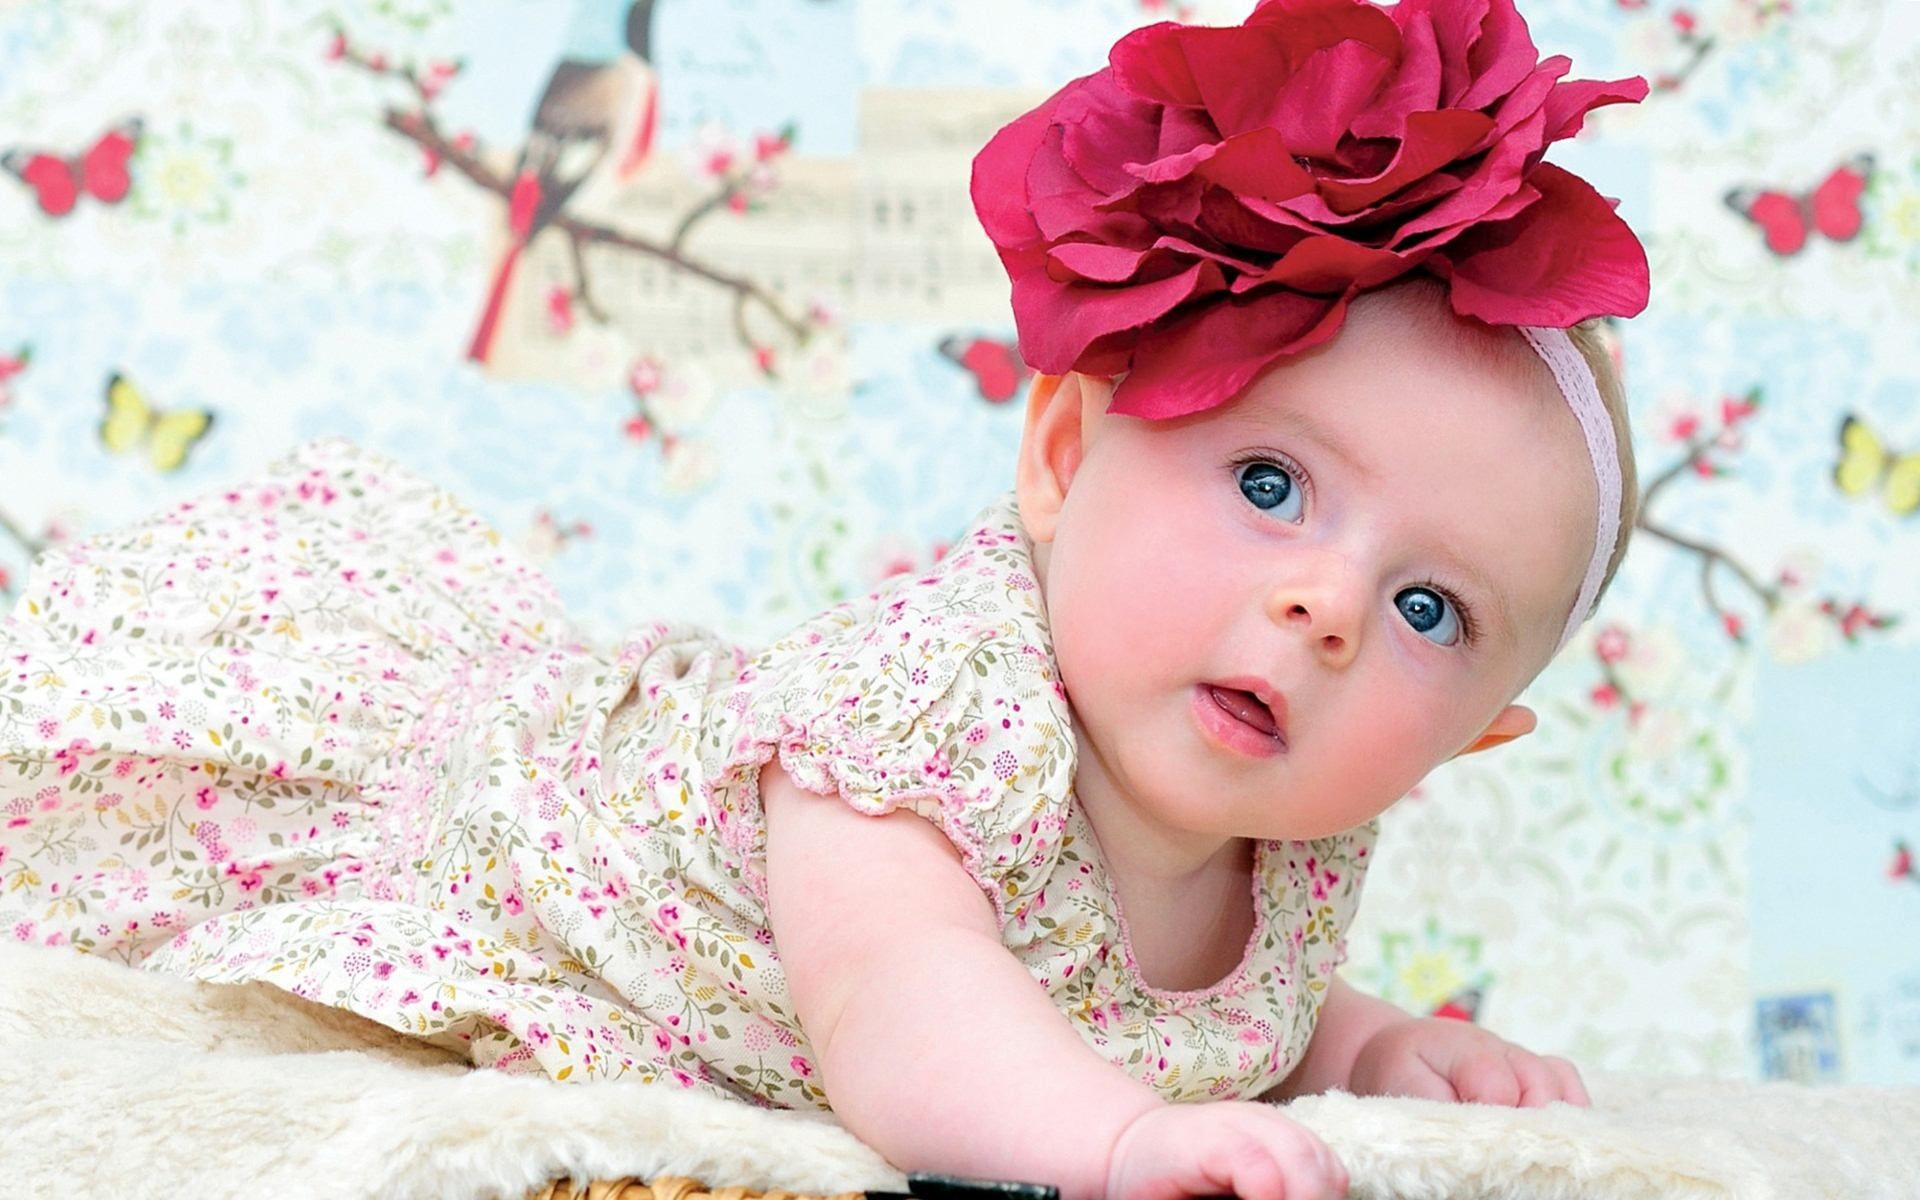 Free Download 63 Baby Girl Wallpapers On Wallpaperplay 1920x1200 For Your Desktop Mobile Tablet Explore 18 Beautiful Beby Wallpaper Beautiful Beby Wallpaper Beautiful Wallpaper Wallpapers Beautiful